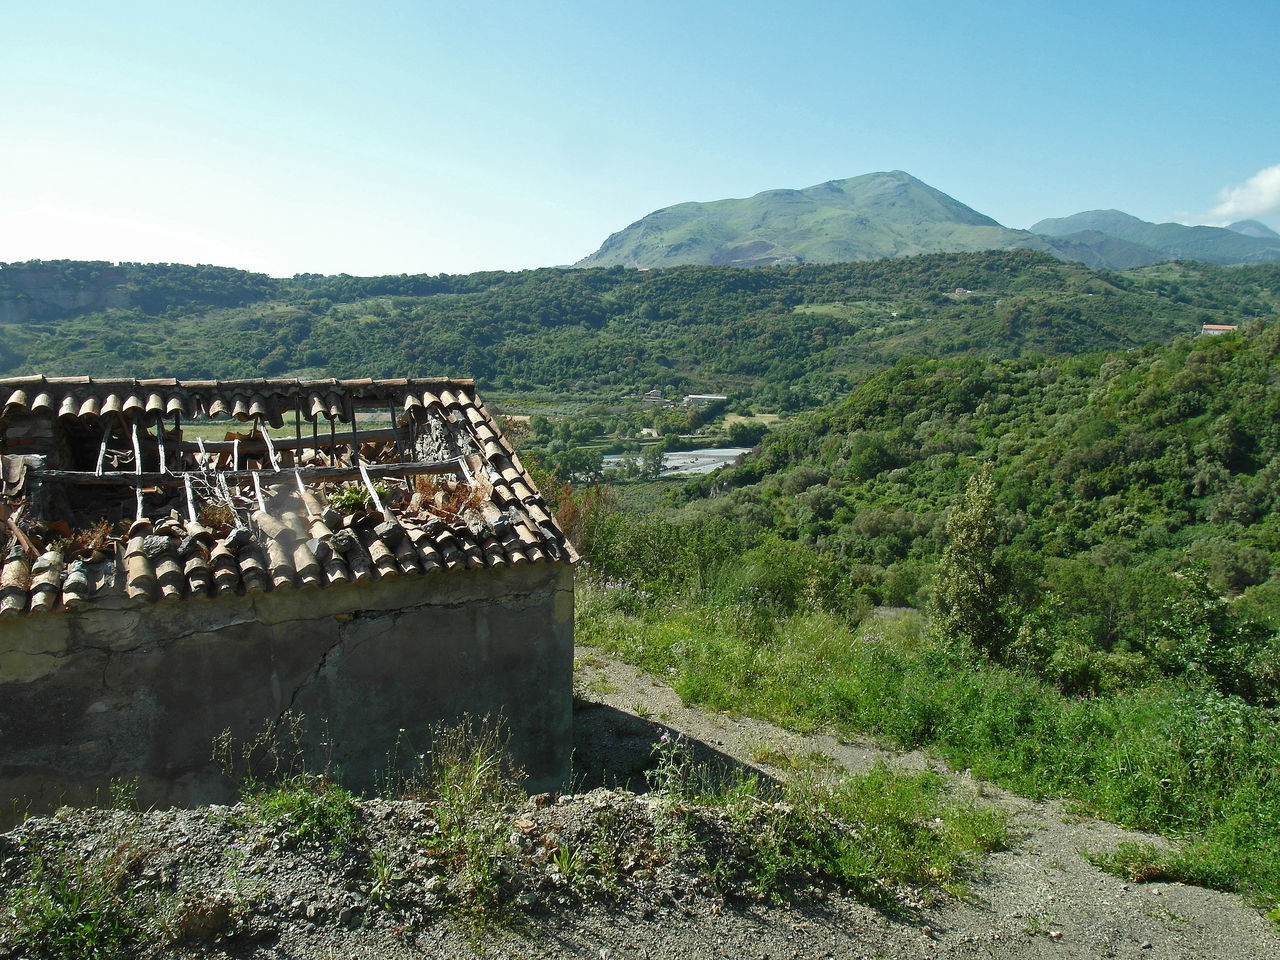 Calabrian landscape Roof South Italy Trees Abandoned Buildings Architecture Beauty In Nature Building Built Structure Calabria Forest Forest Trees Italy Landscape Mountain Nature Orsomarso Roof Broken Down Travel Destination